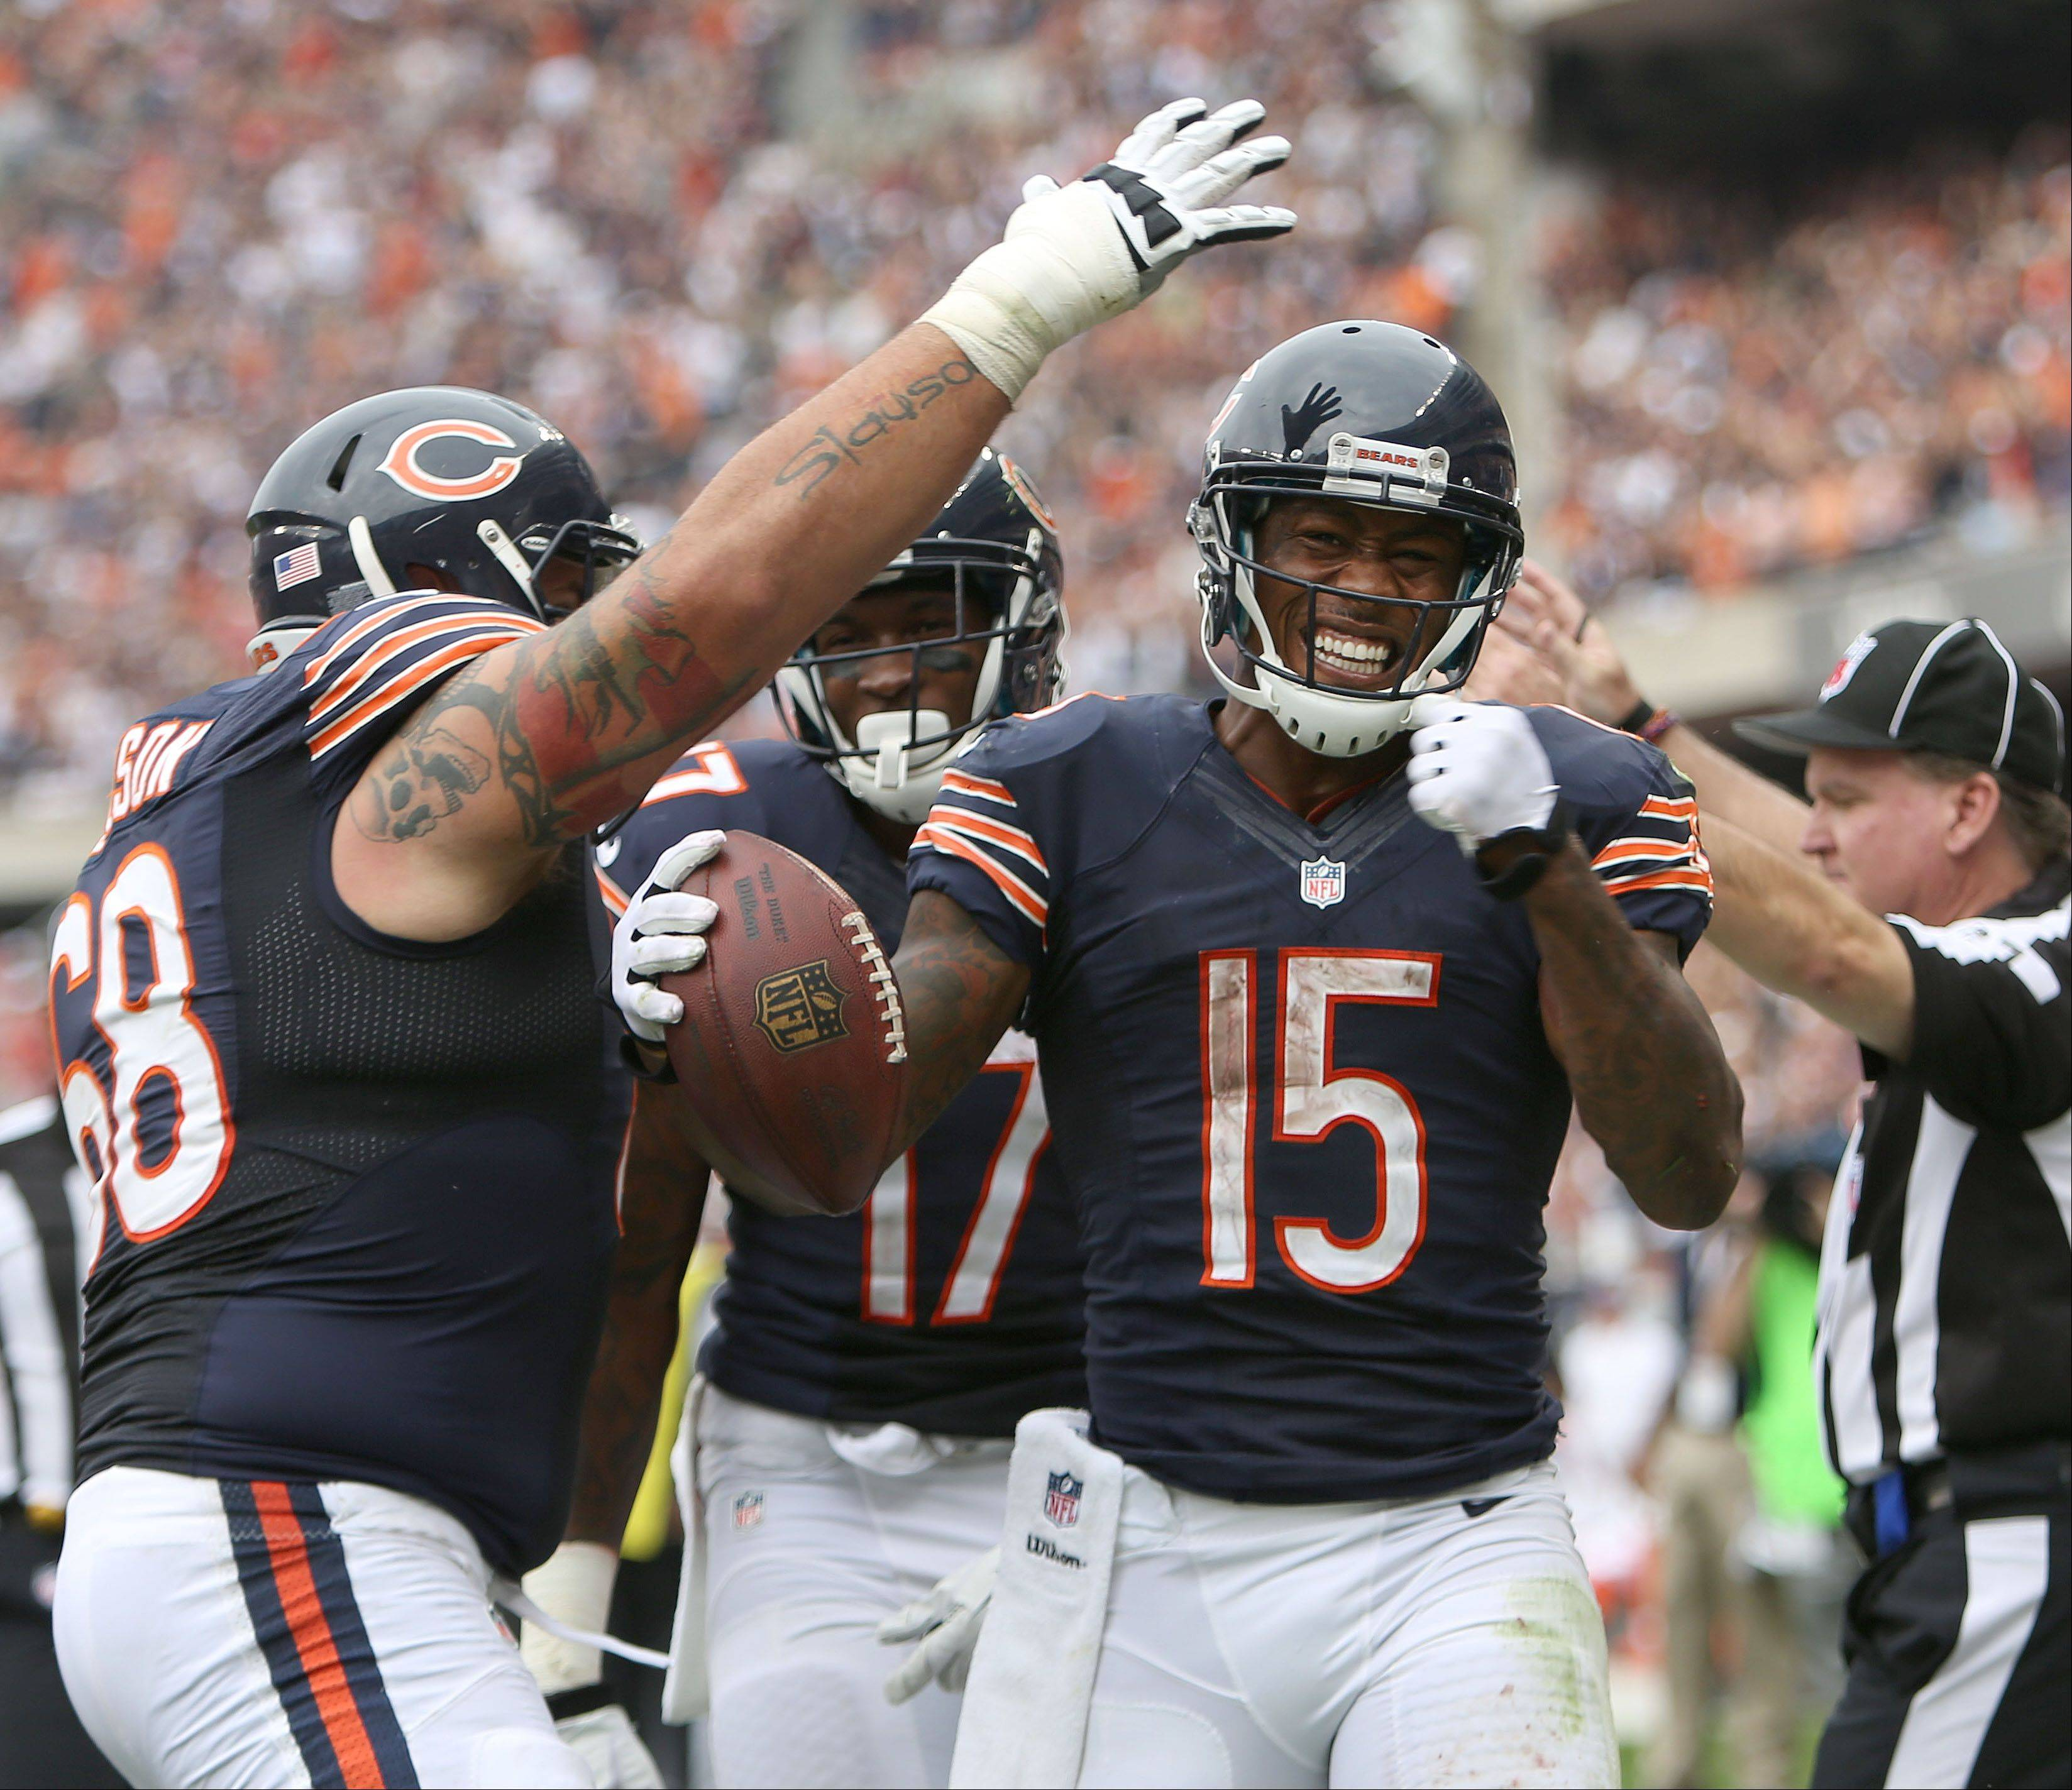 Chicago Bears wide receiver Brandon Marshall celebrates with Chicago Bears guard Matt Slauson after his touchdown catch in the 4th quarter during their opening day win over the Bengals Sunday at Soldier Field in Chicago.